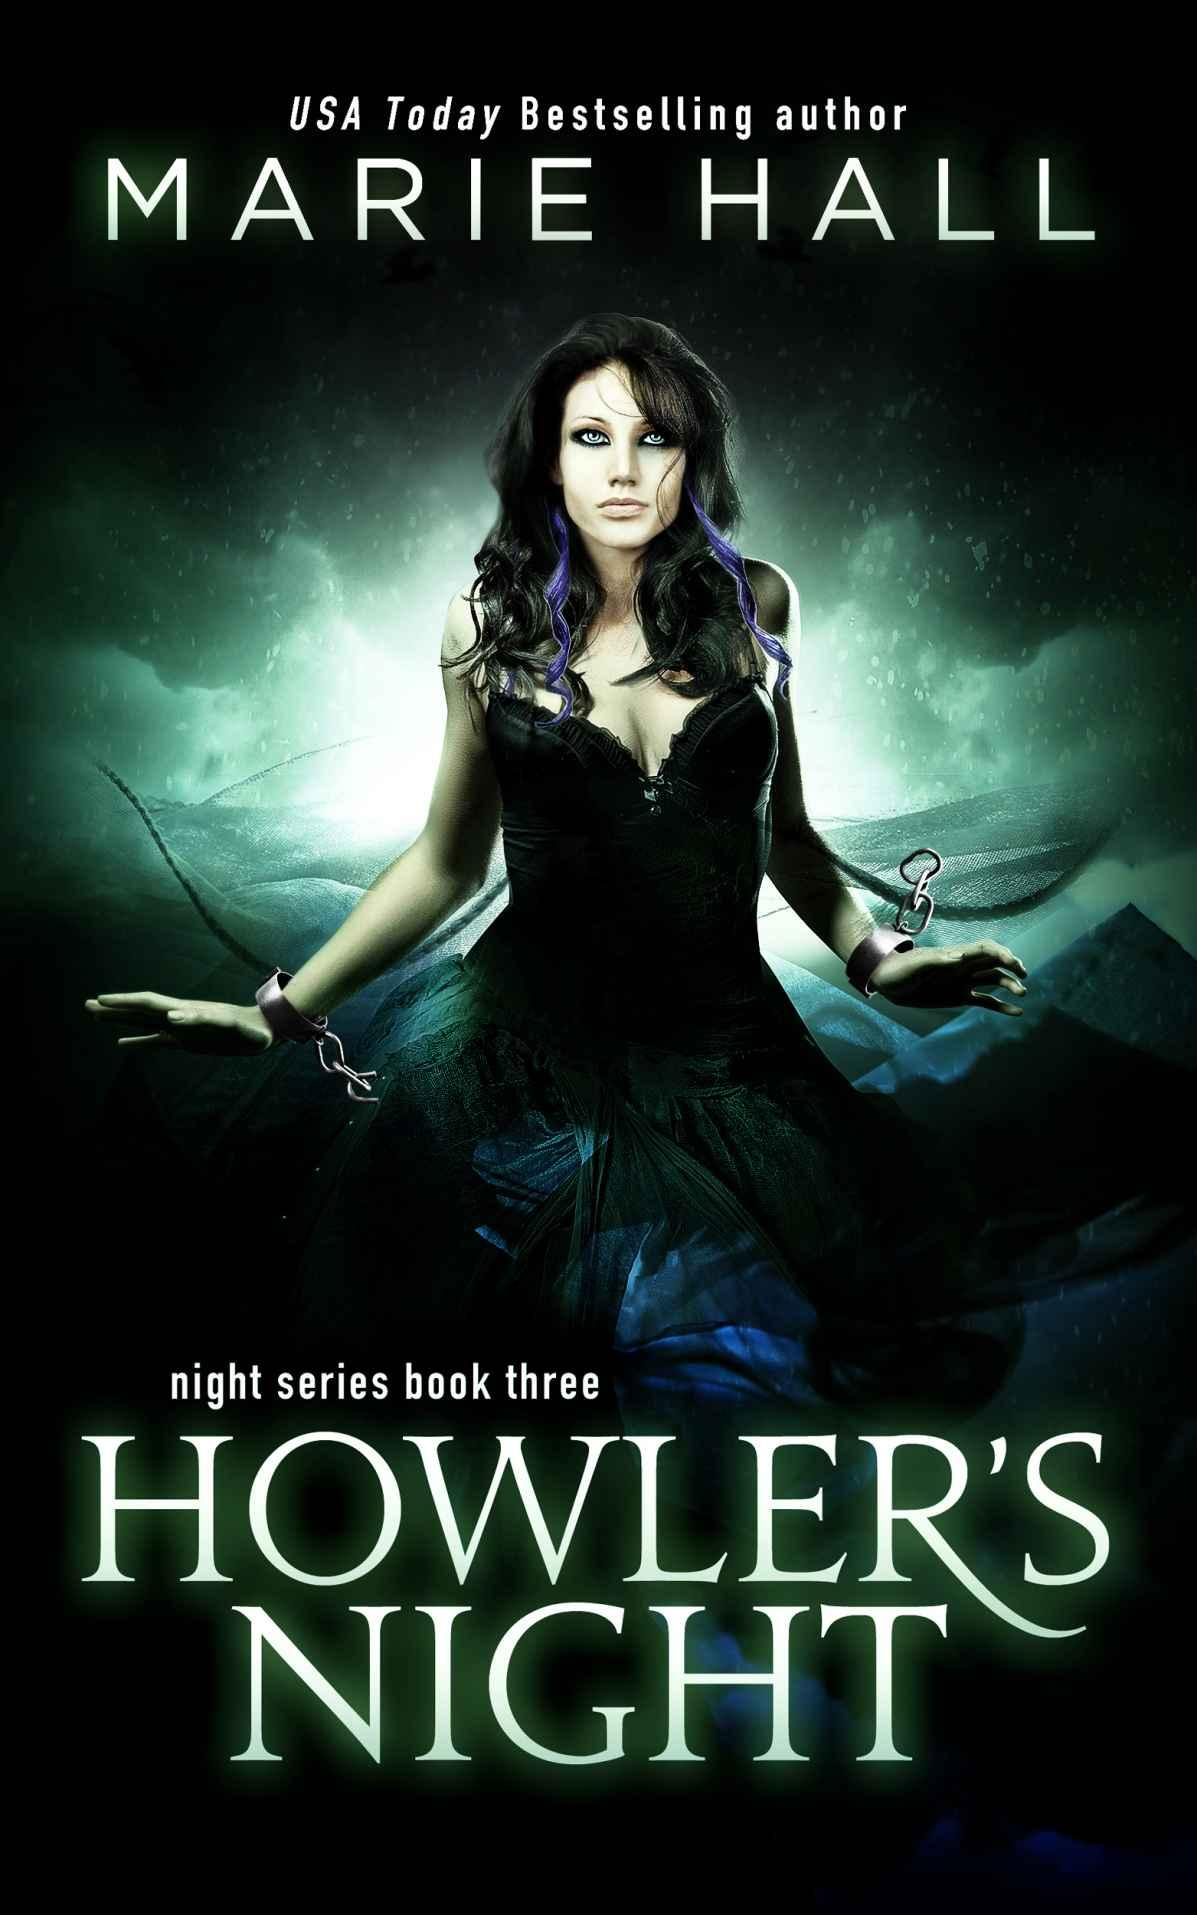 Howler's Night